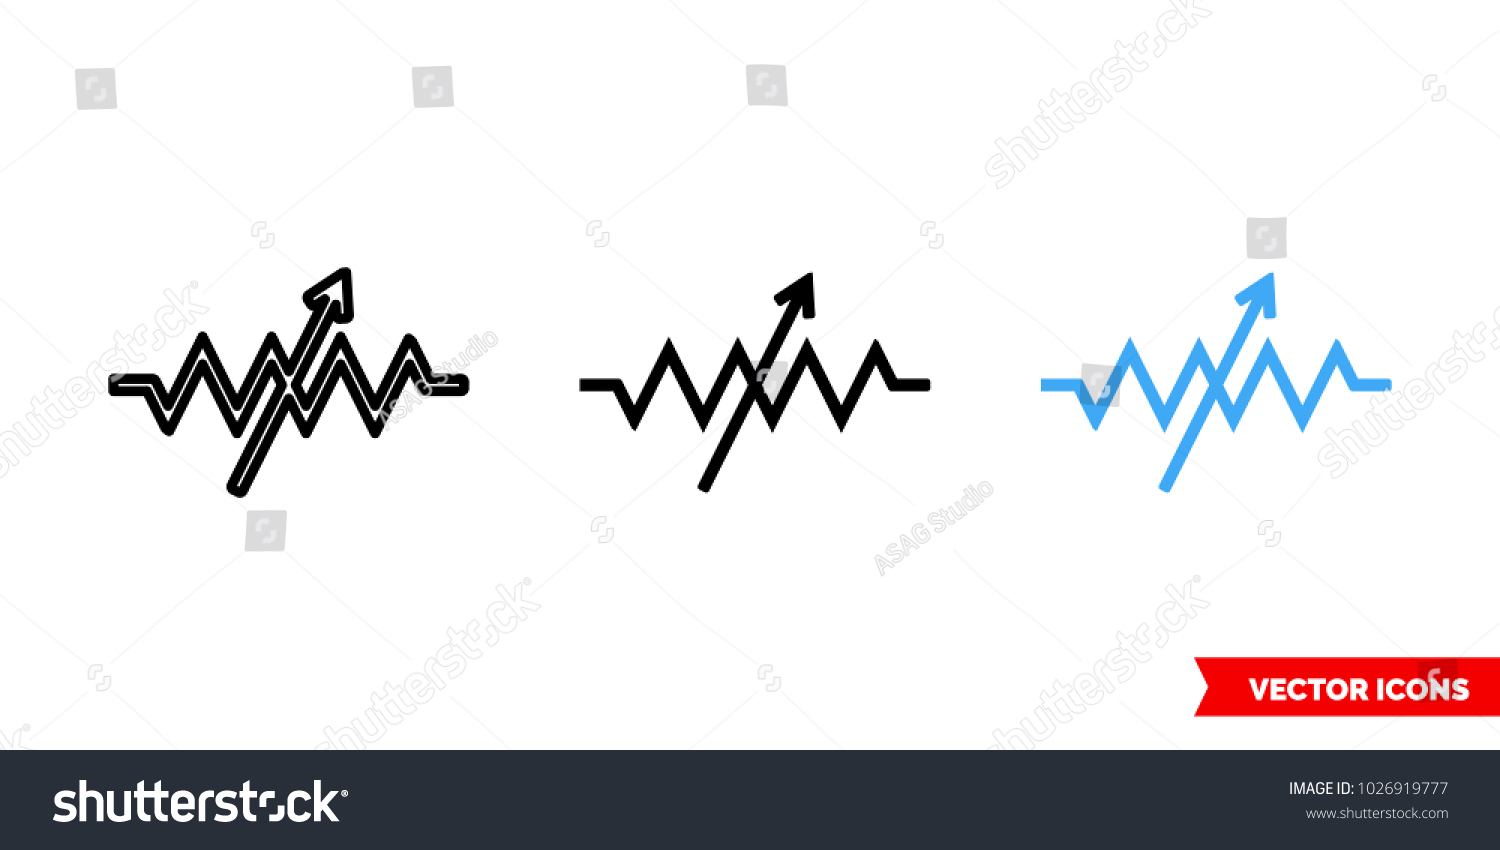 Variable Resistor Symbol Icon 3 Types Stock Vector Royalty Free